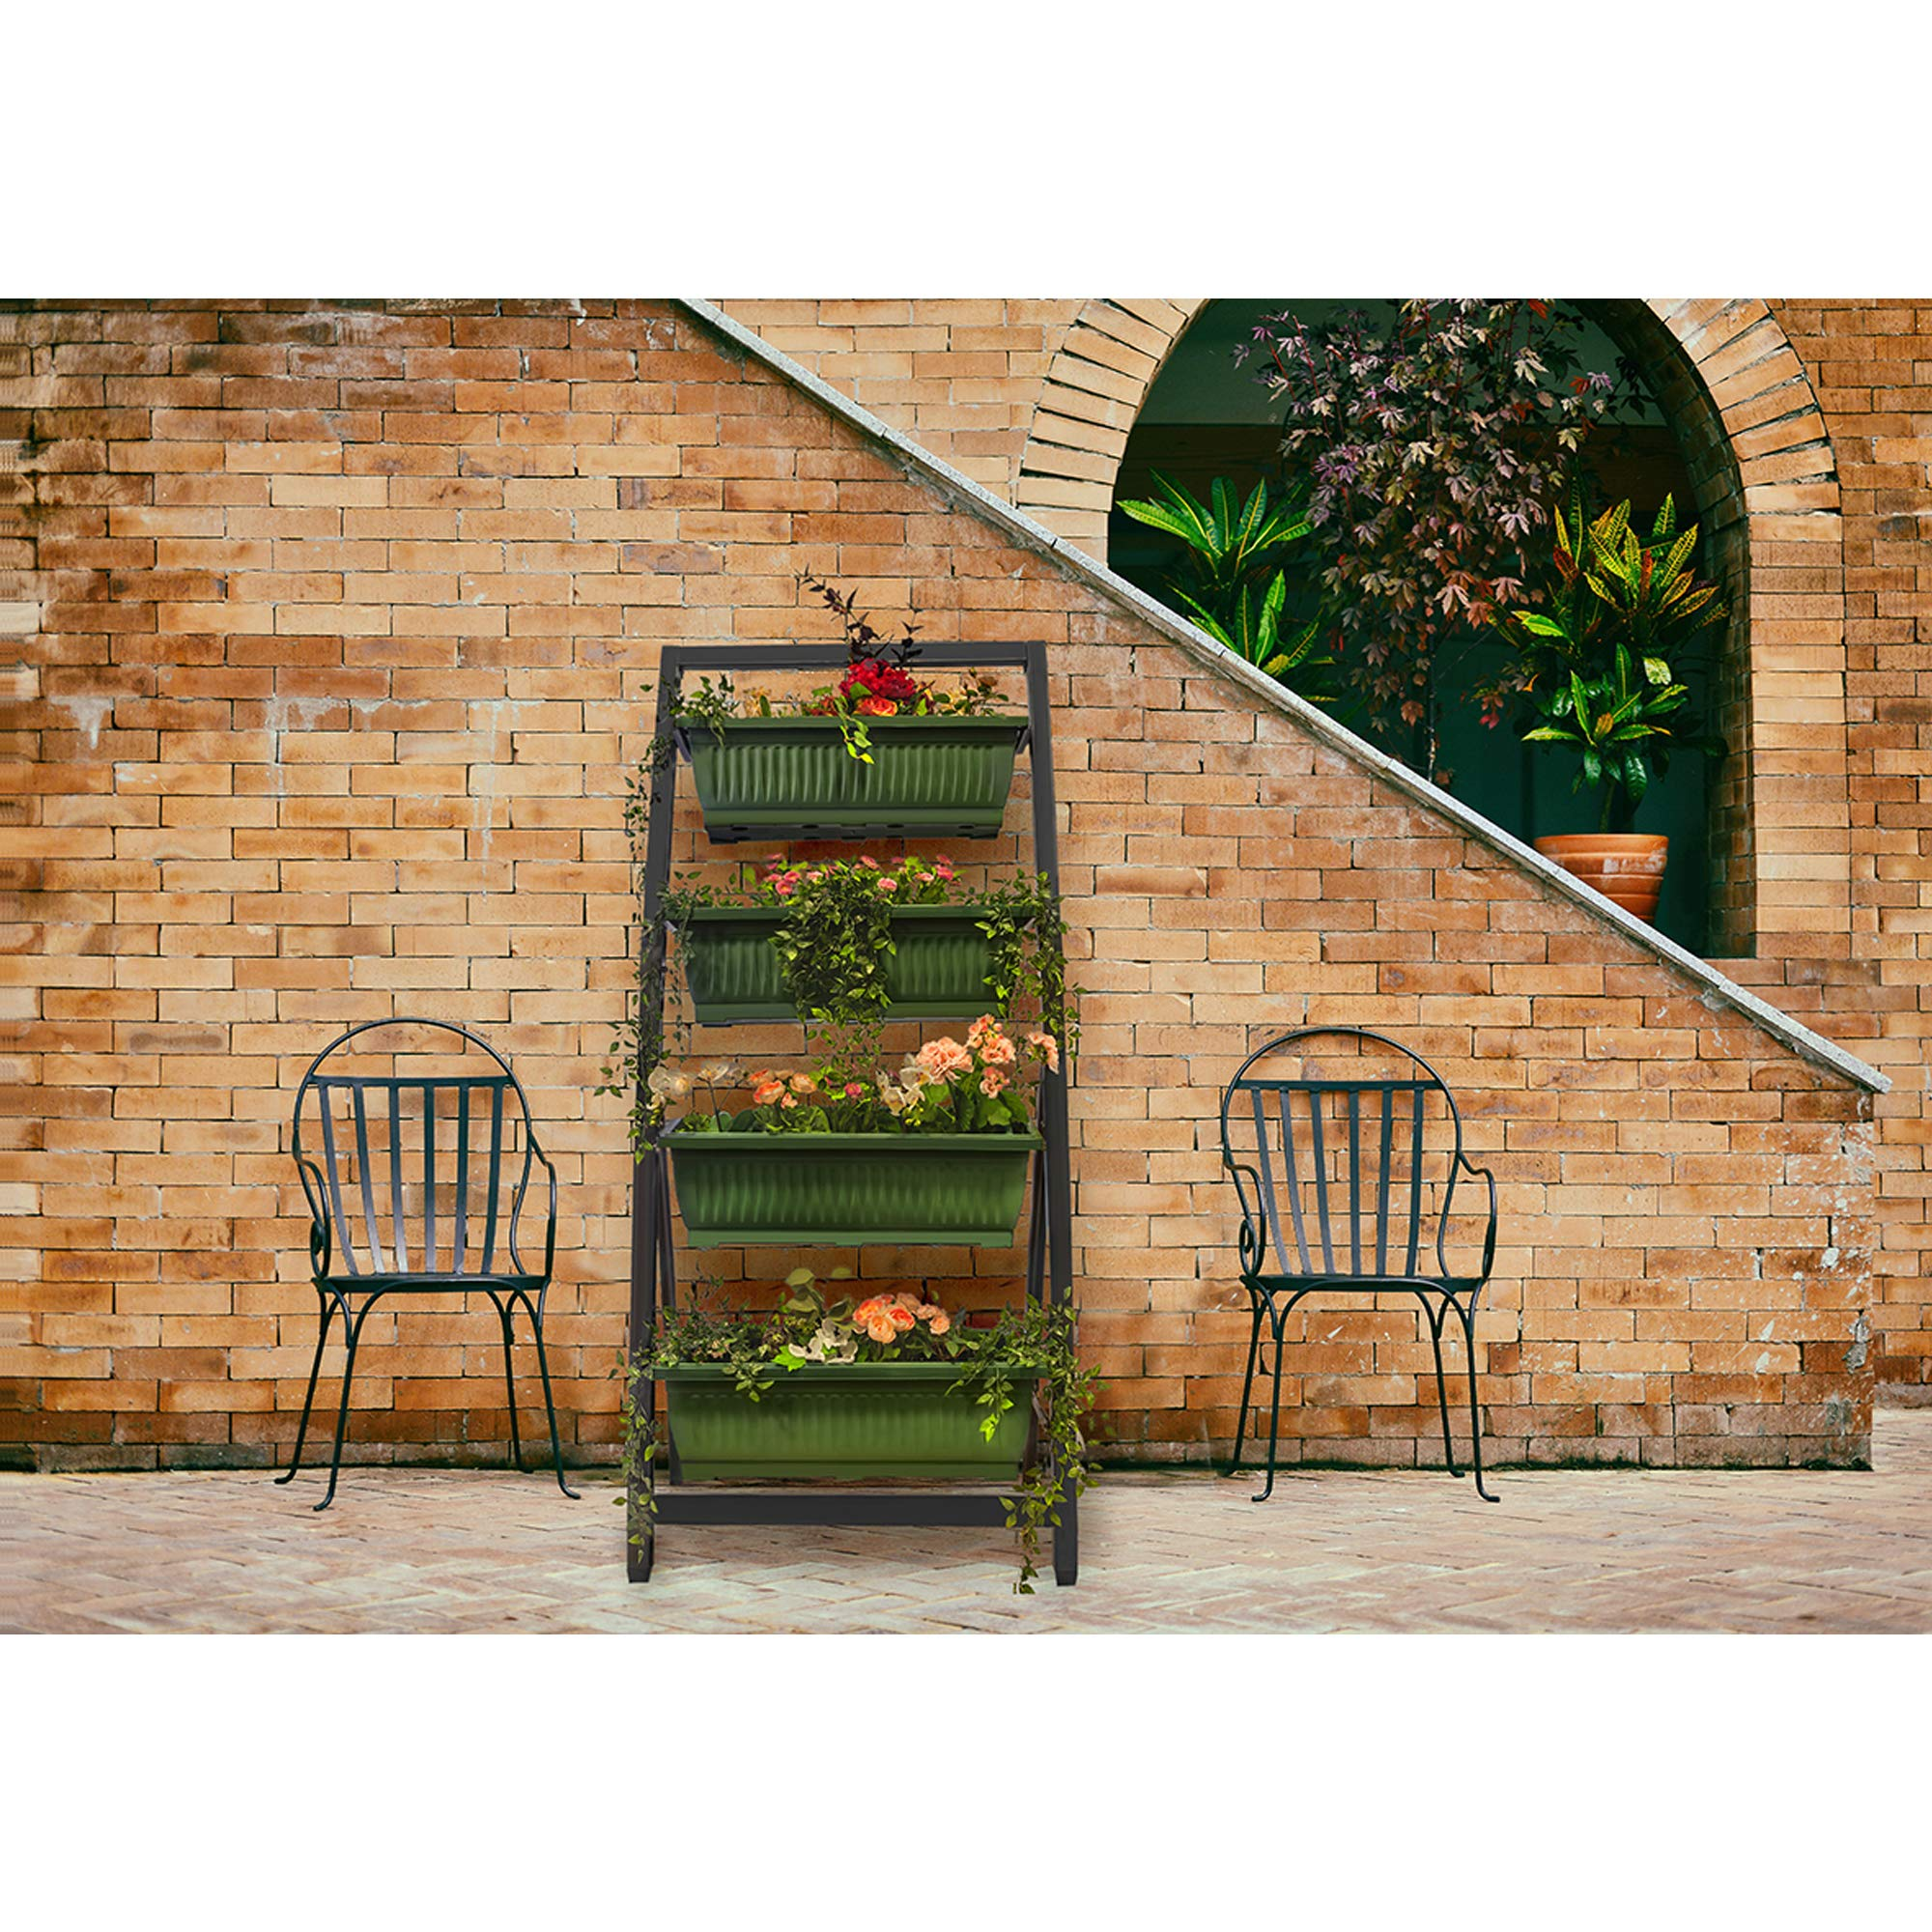 6-Ft Raised Garden Bed - Vertical Garden Freestanding Elevated Planter with 4 Container Boxes - Good for Patio or Balcony Indoor and Outdoor - Cascading Water Drainage (1-Pack/Forest Green) by Outland Living (Image #7)